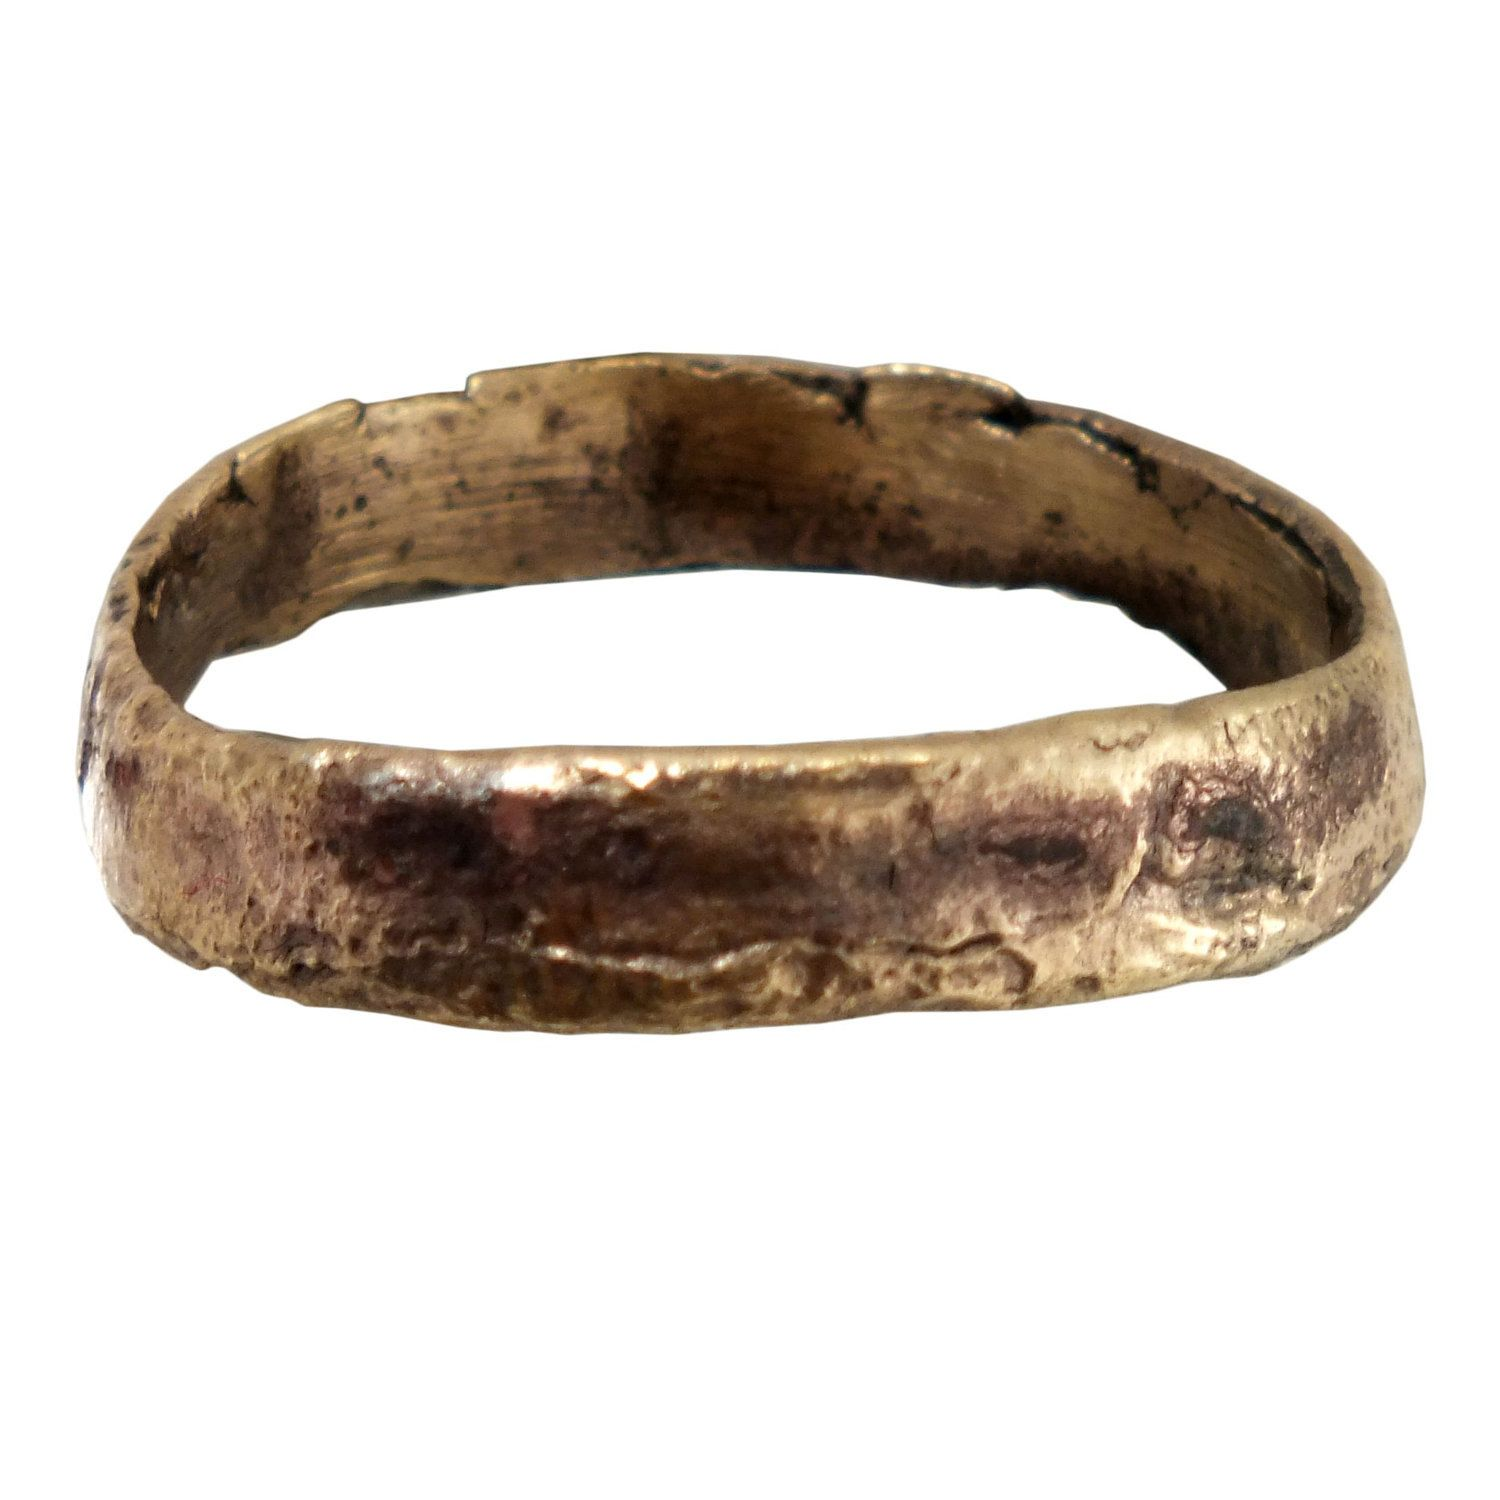 Real Ancient Viking Wedding Ring Mans or Womens Jewelry